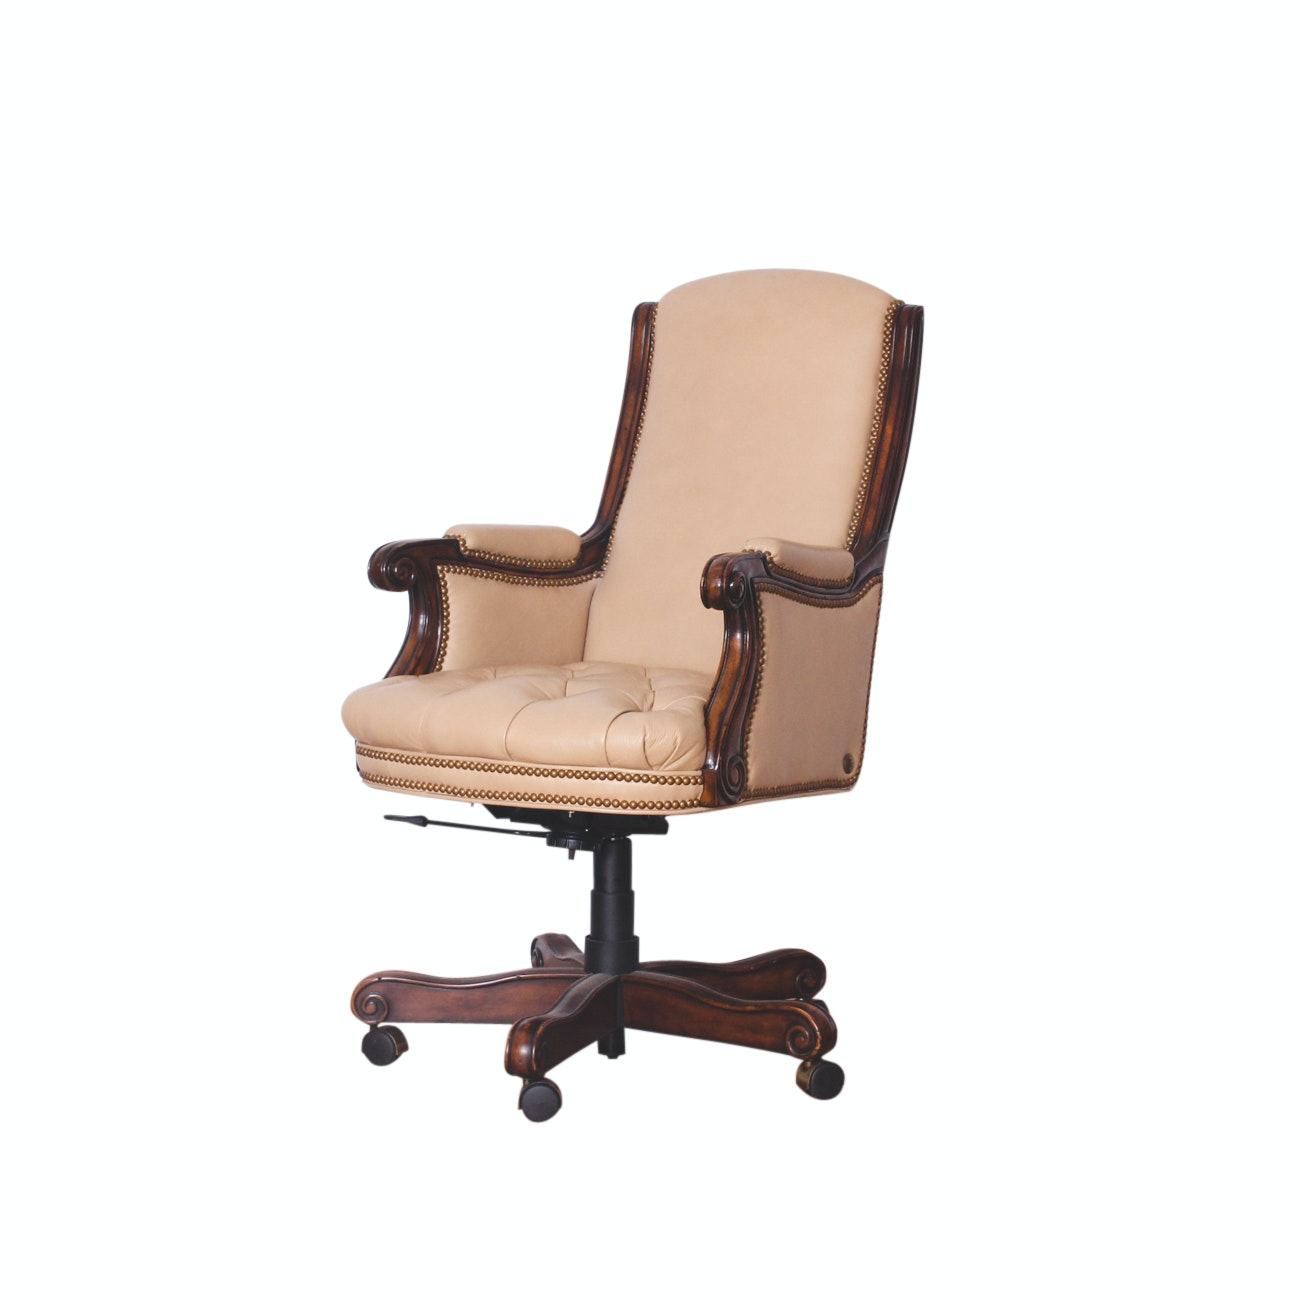 William-Sonoma Tufted Leather Executive Desk Chair